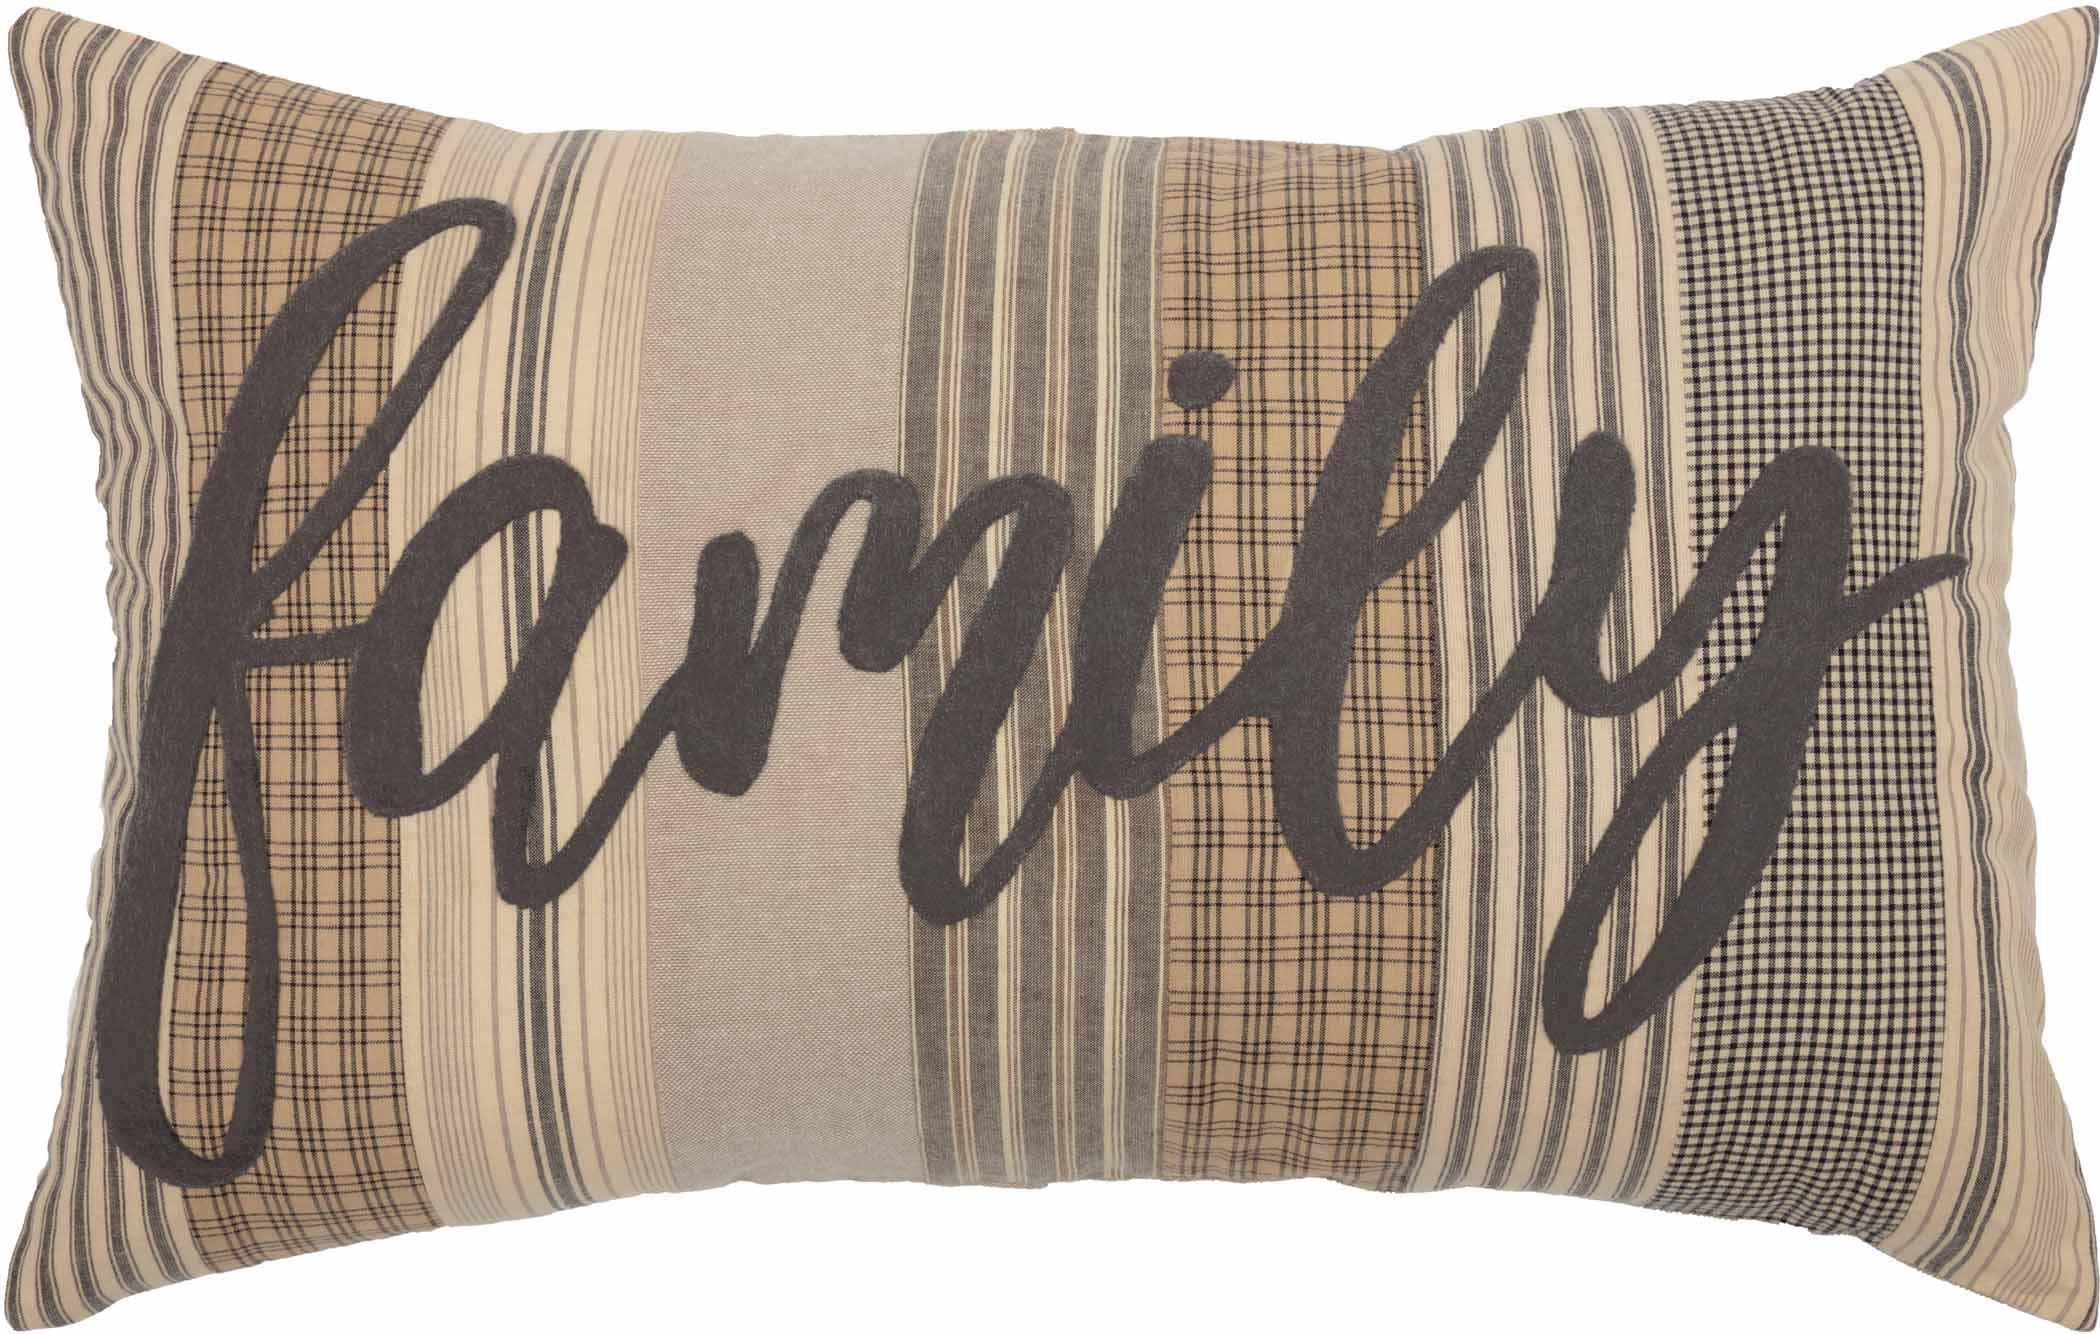 Sawyer-Mill-Charcoal-Family-Pillow-14x22-image-3